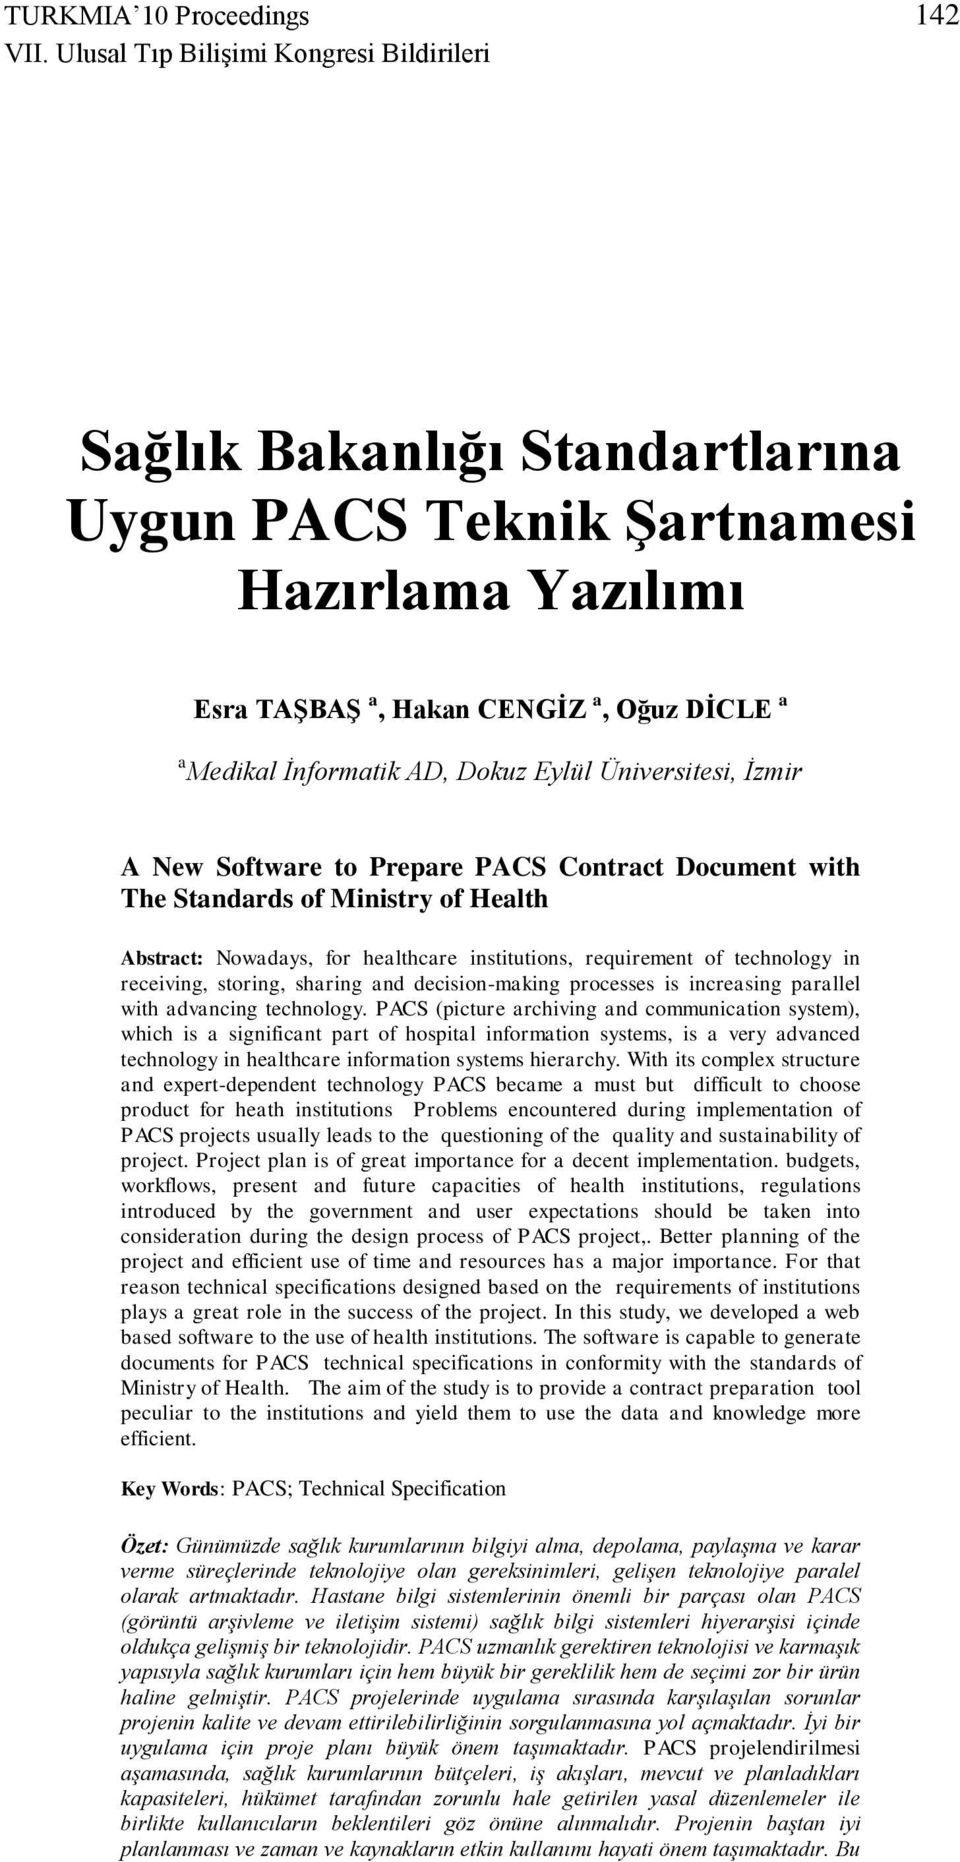 Eylül Üniversitesi, İzmir A New Software to Prepare PACS Contract Document with The Standards of Ministry of Health Abstract: Nowadays, for healthcare institutions, requirement of technology in